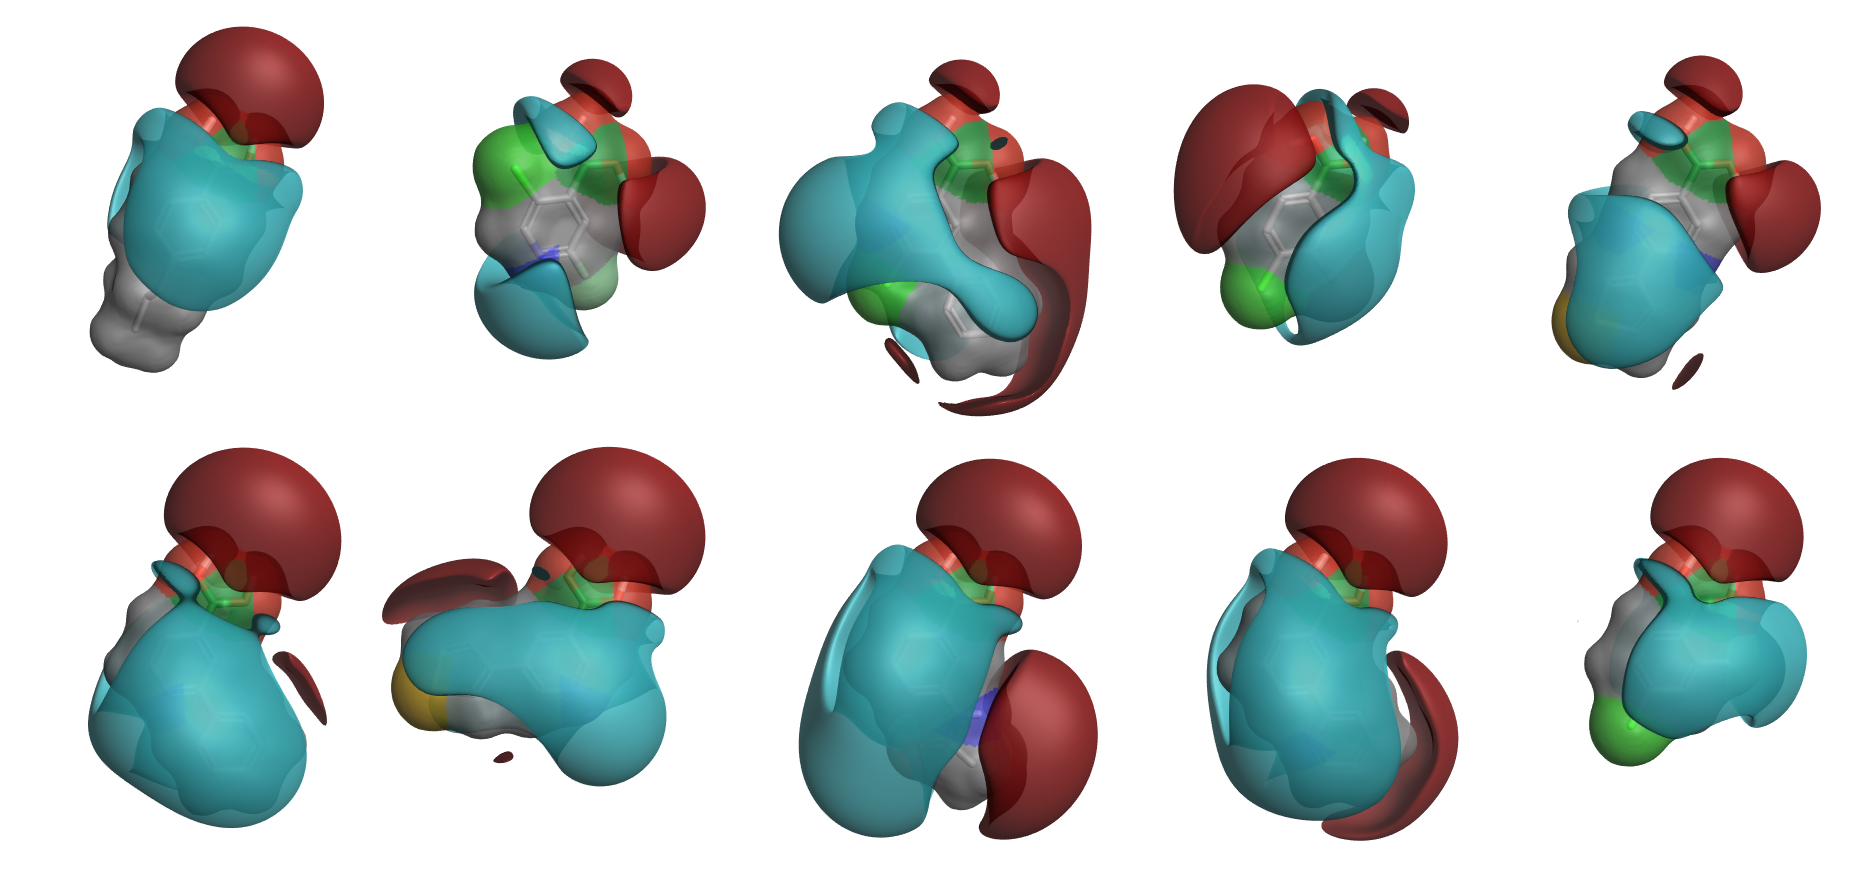 Medoids of the largest 10 clusters from running PickR on 5,500 boronic acids